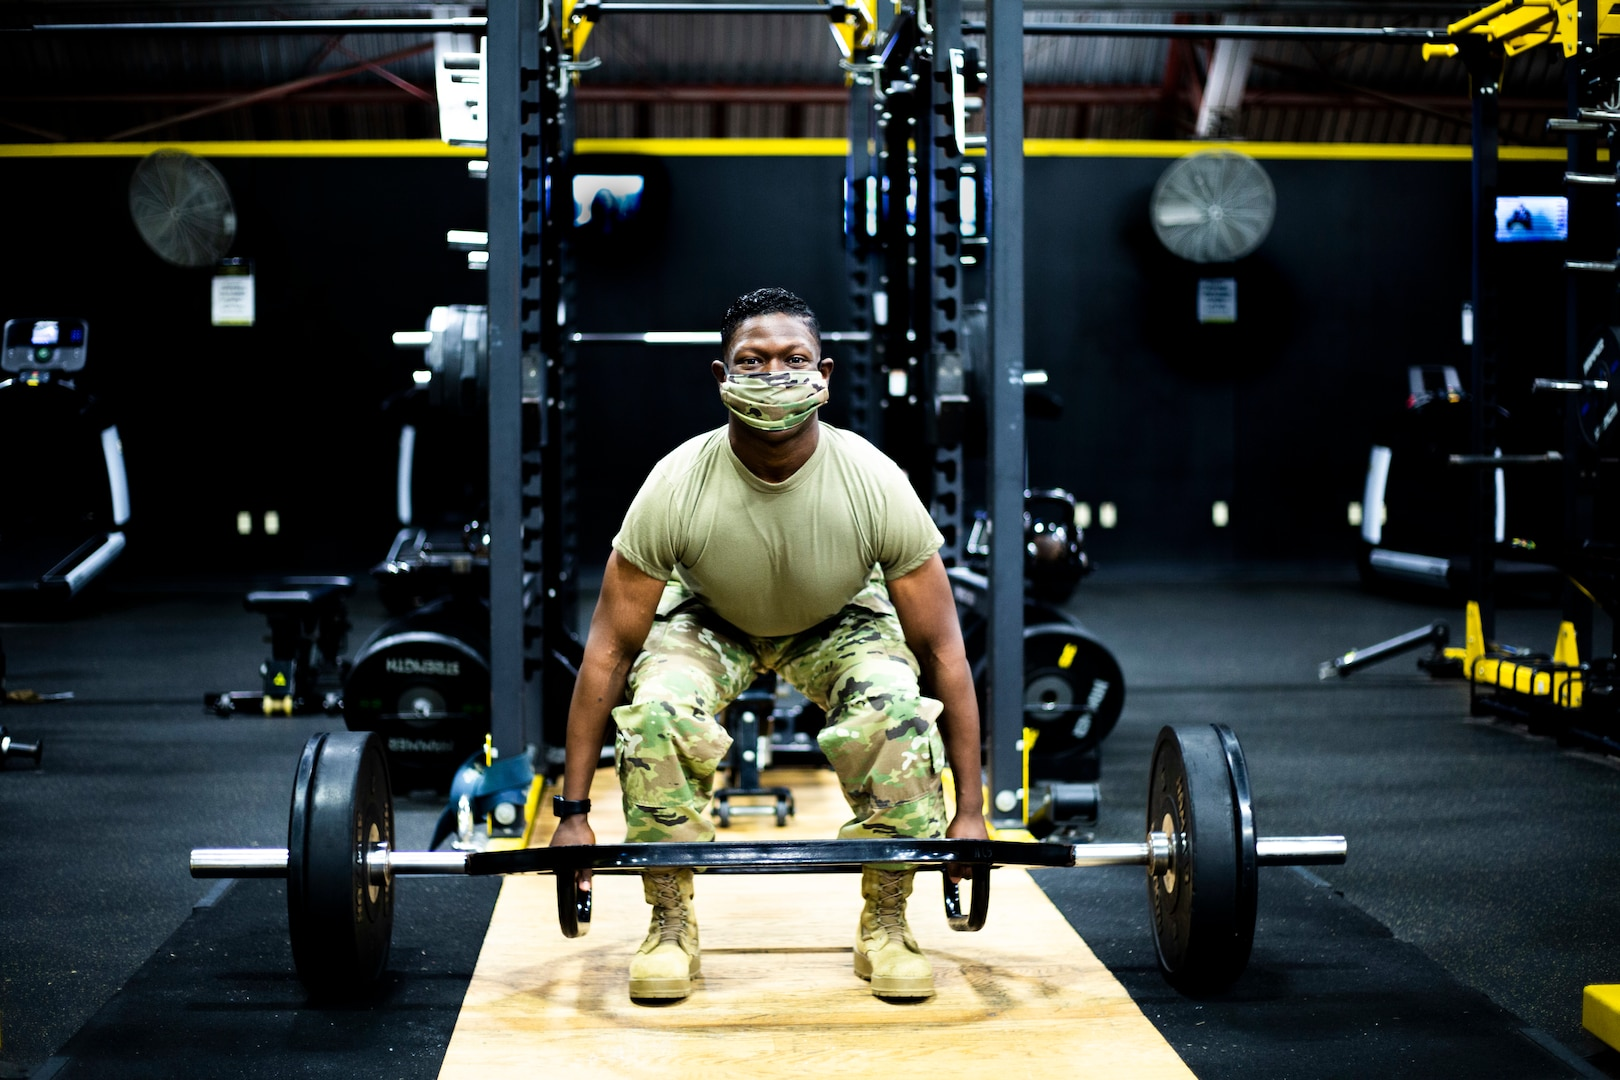 Staff Sgt. Roger Jackson trains for the Army Combat Fitness Test by honing his dead lift skills Nov. 7, 2020, at Fort Lee, Virginia.